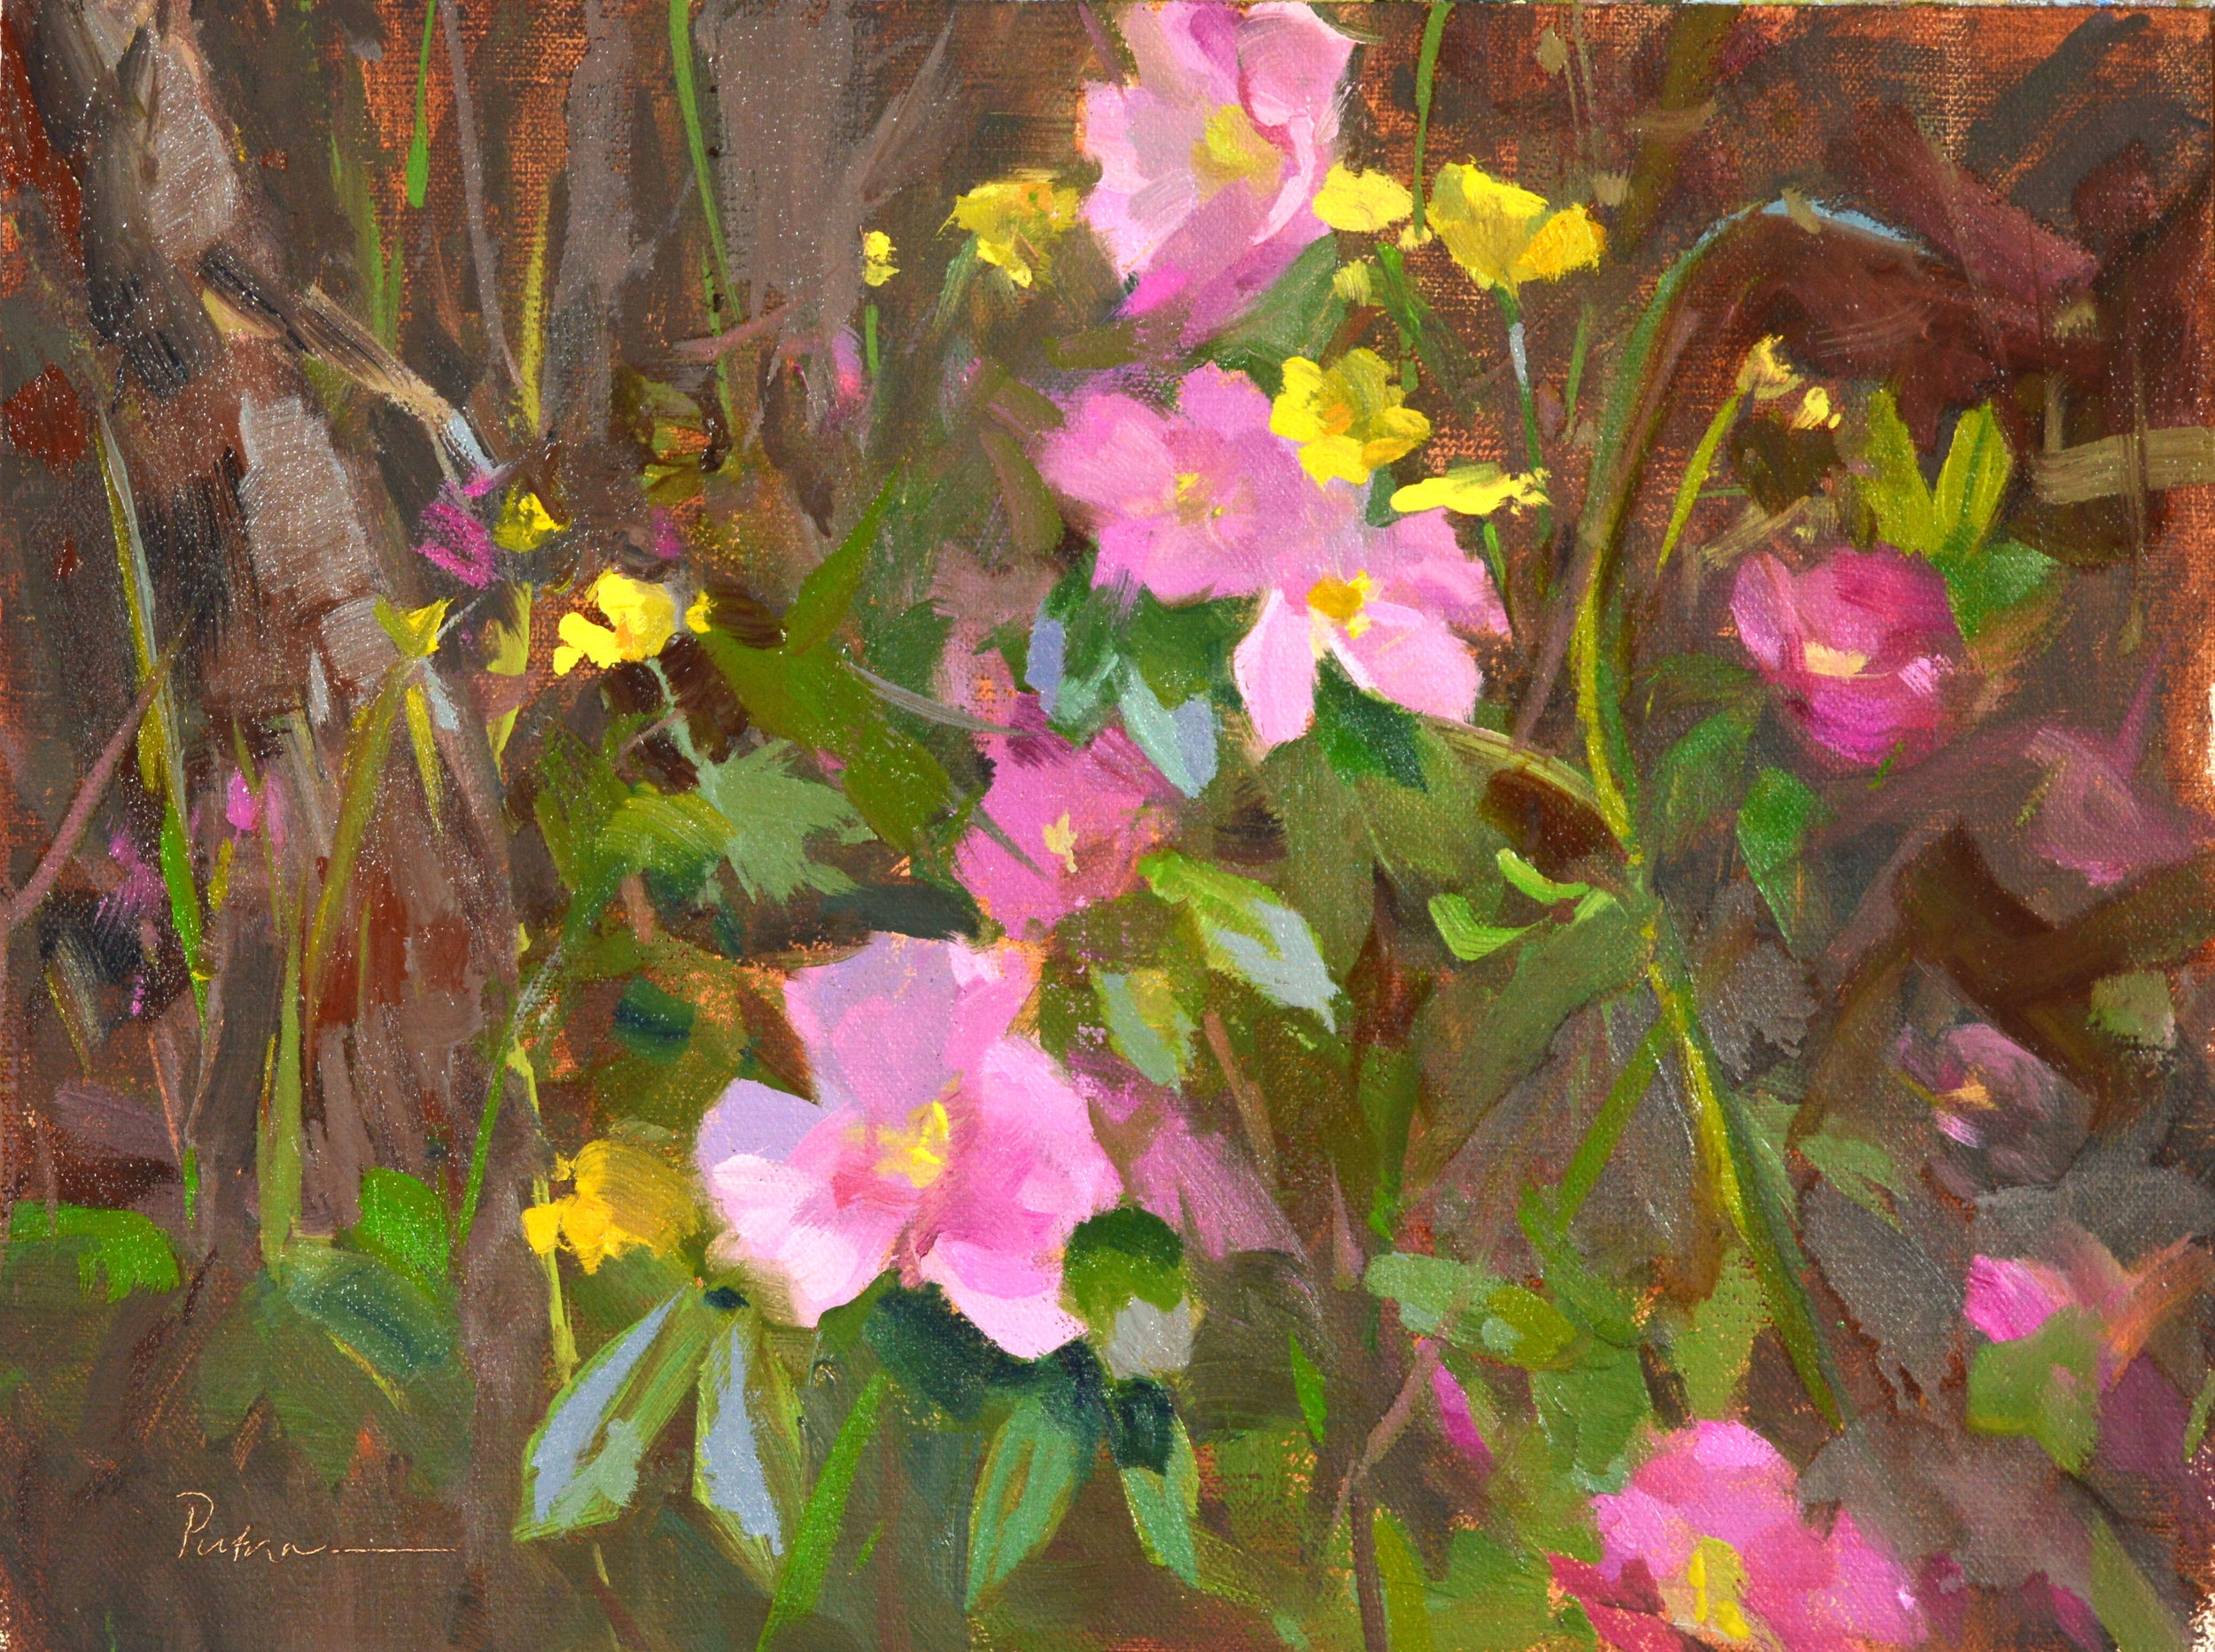 Ways to Use Rhythms in Landscape Painting - Outdoor Painter,March 2019Wild Rose Country, 9x12